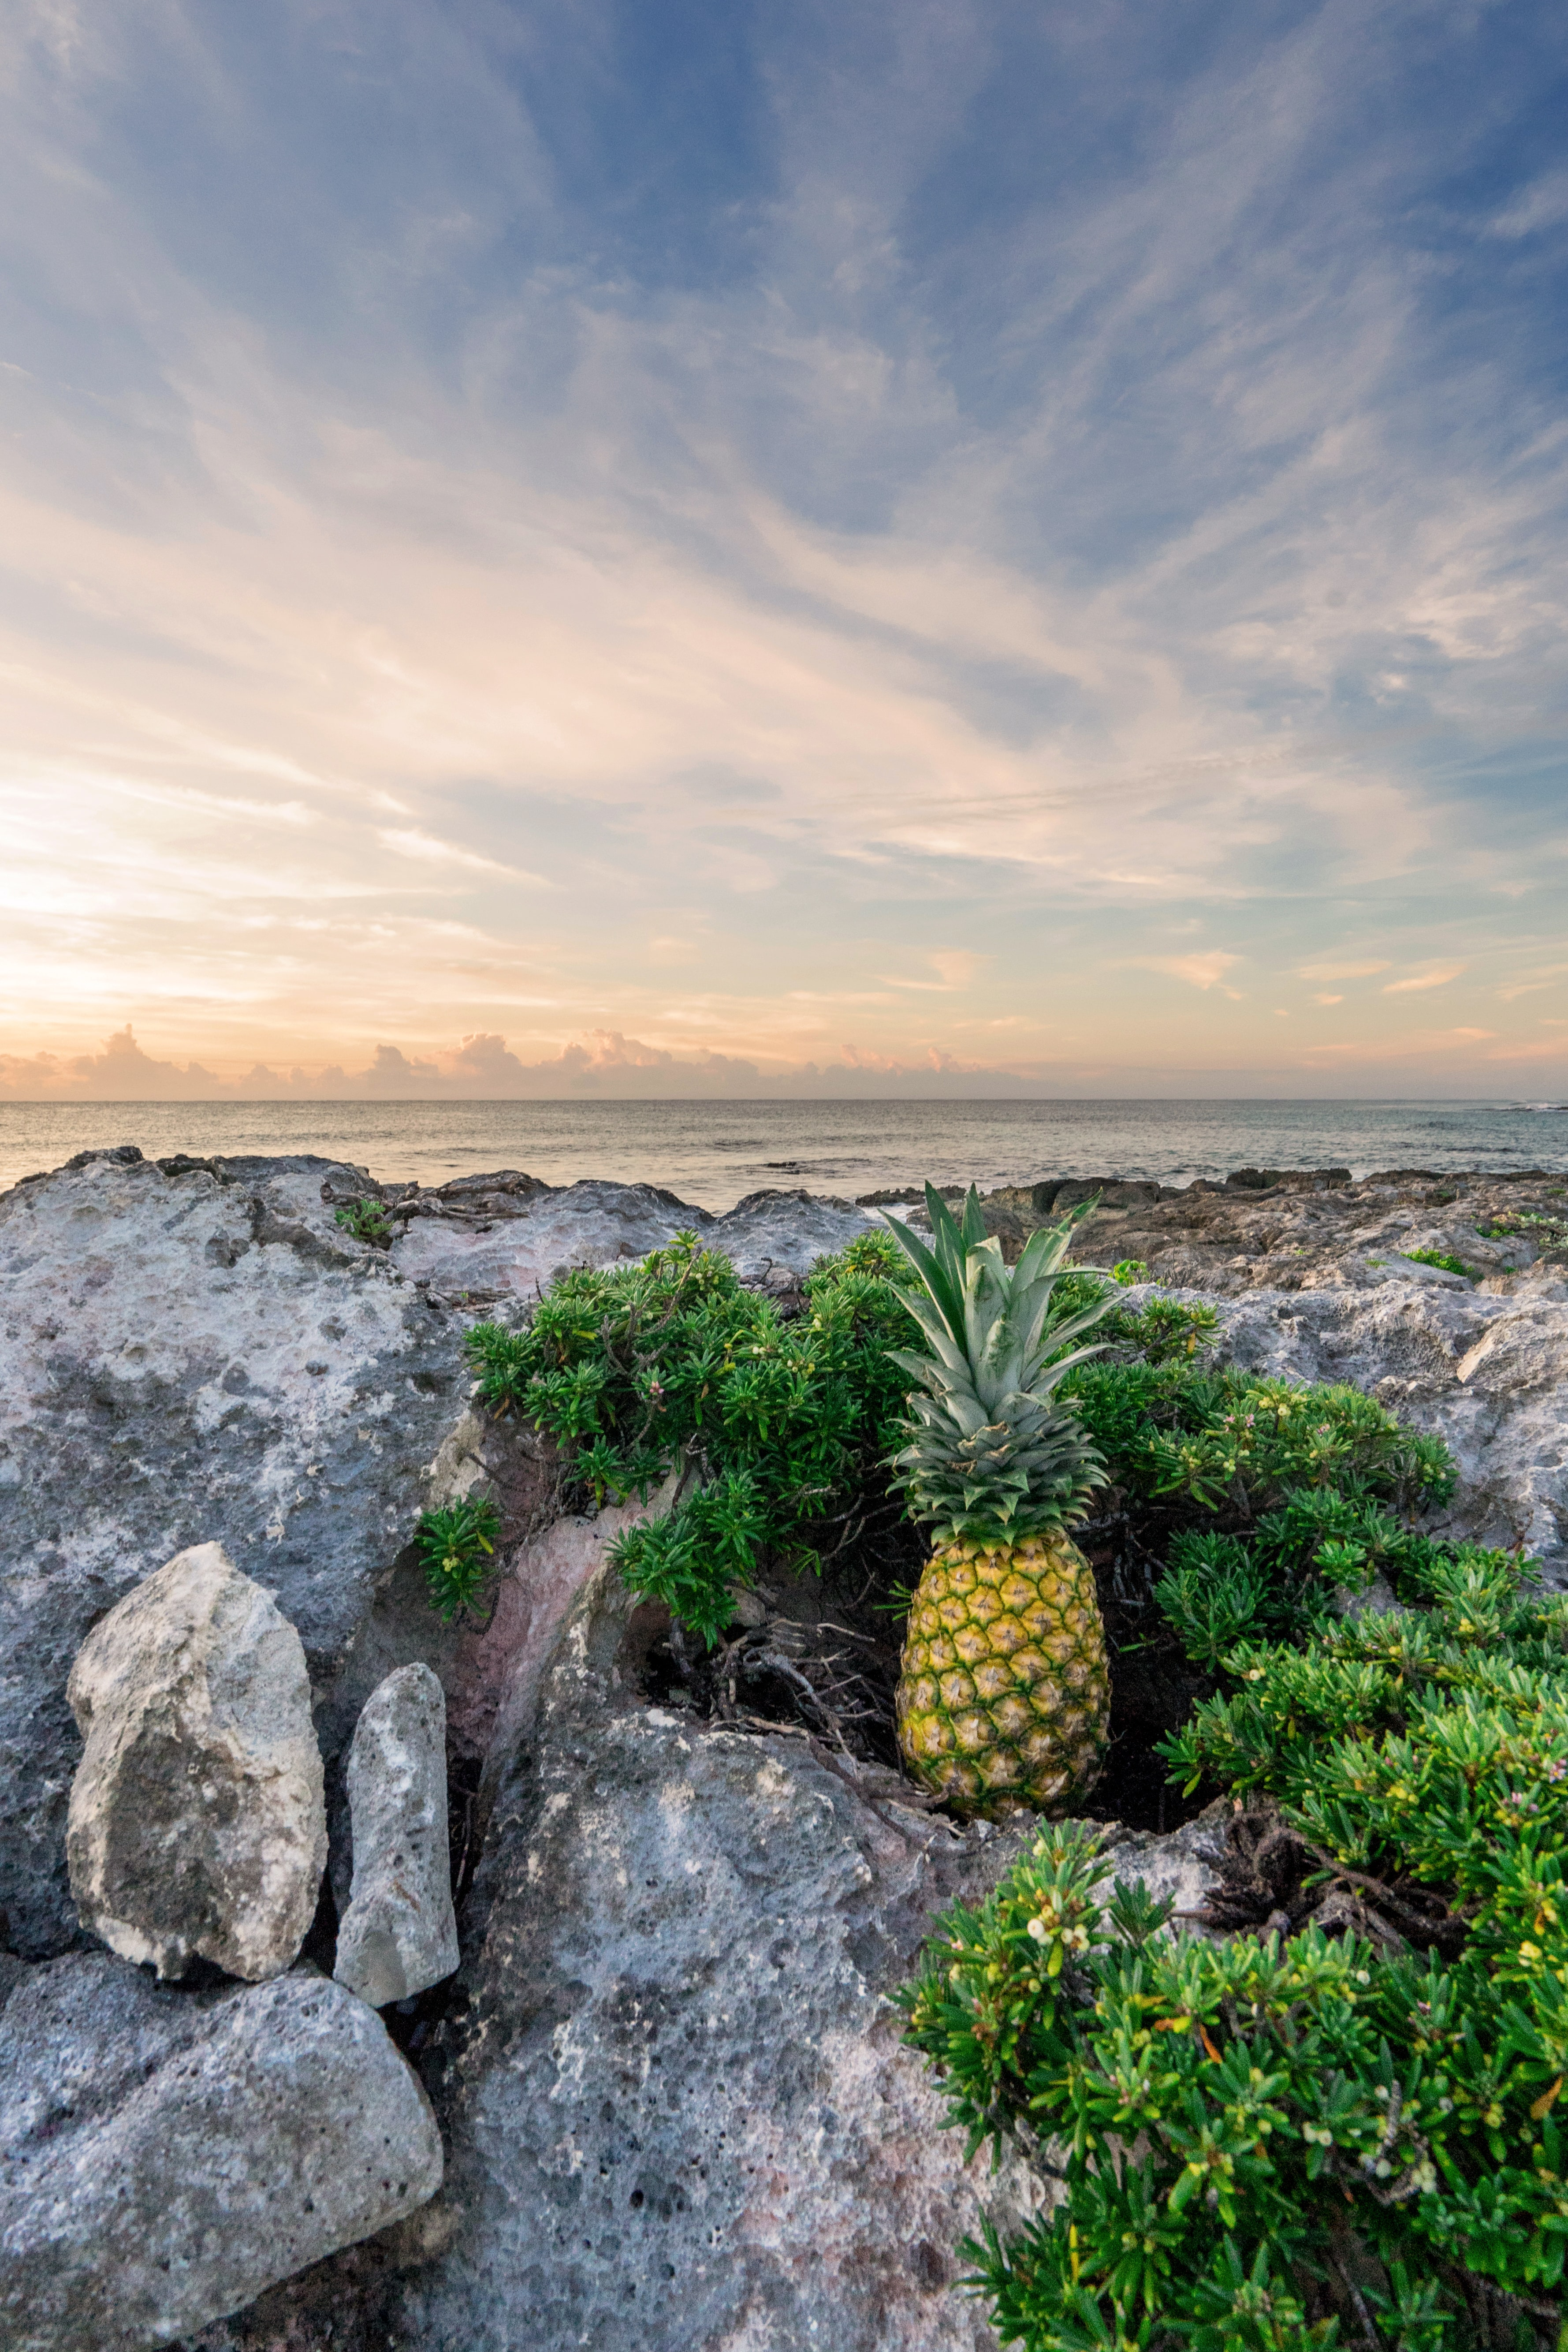 Pineapple sitting among rock formations at the beach.